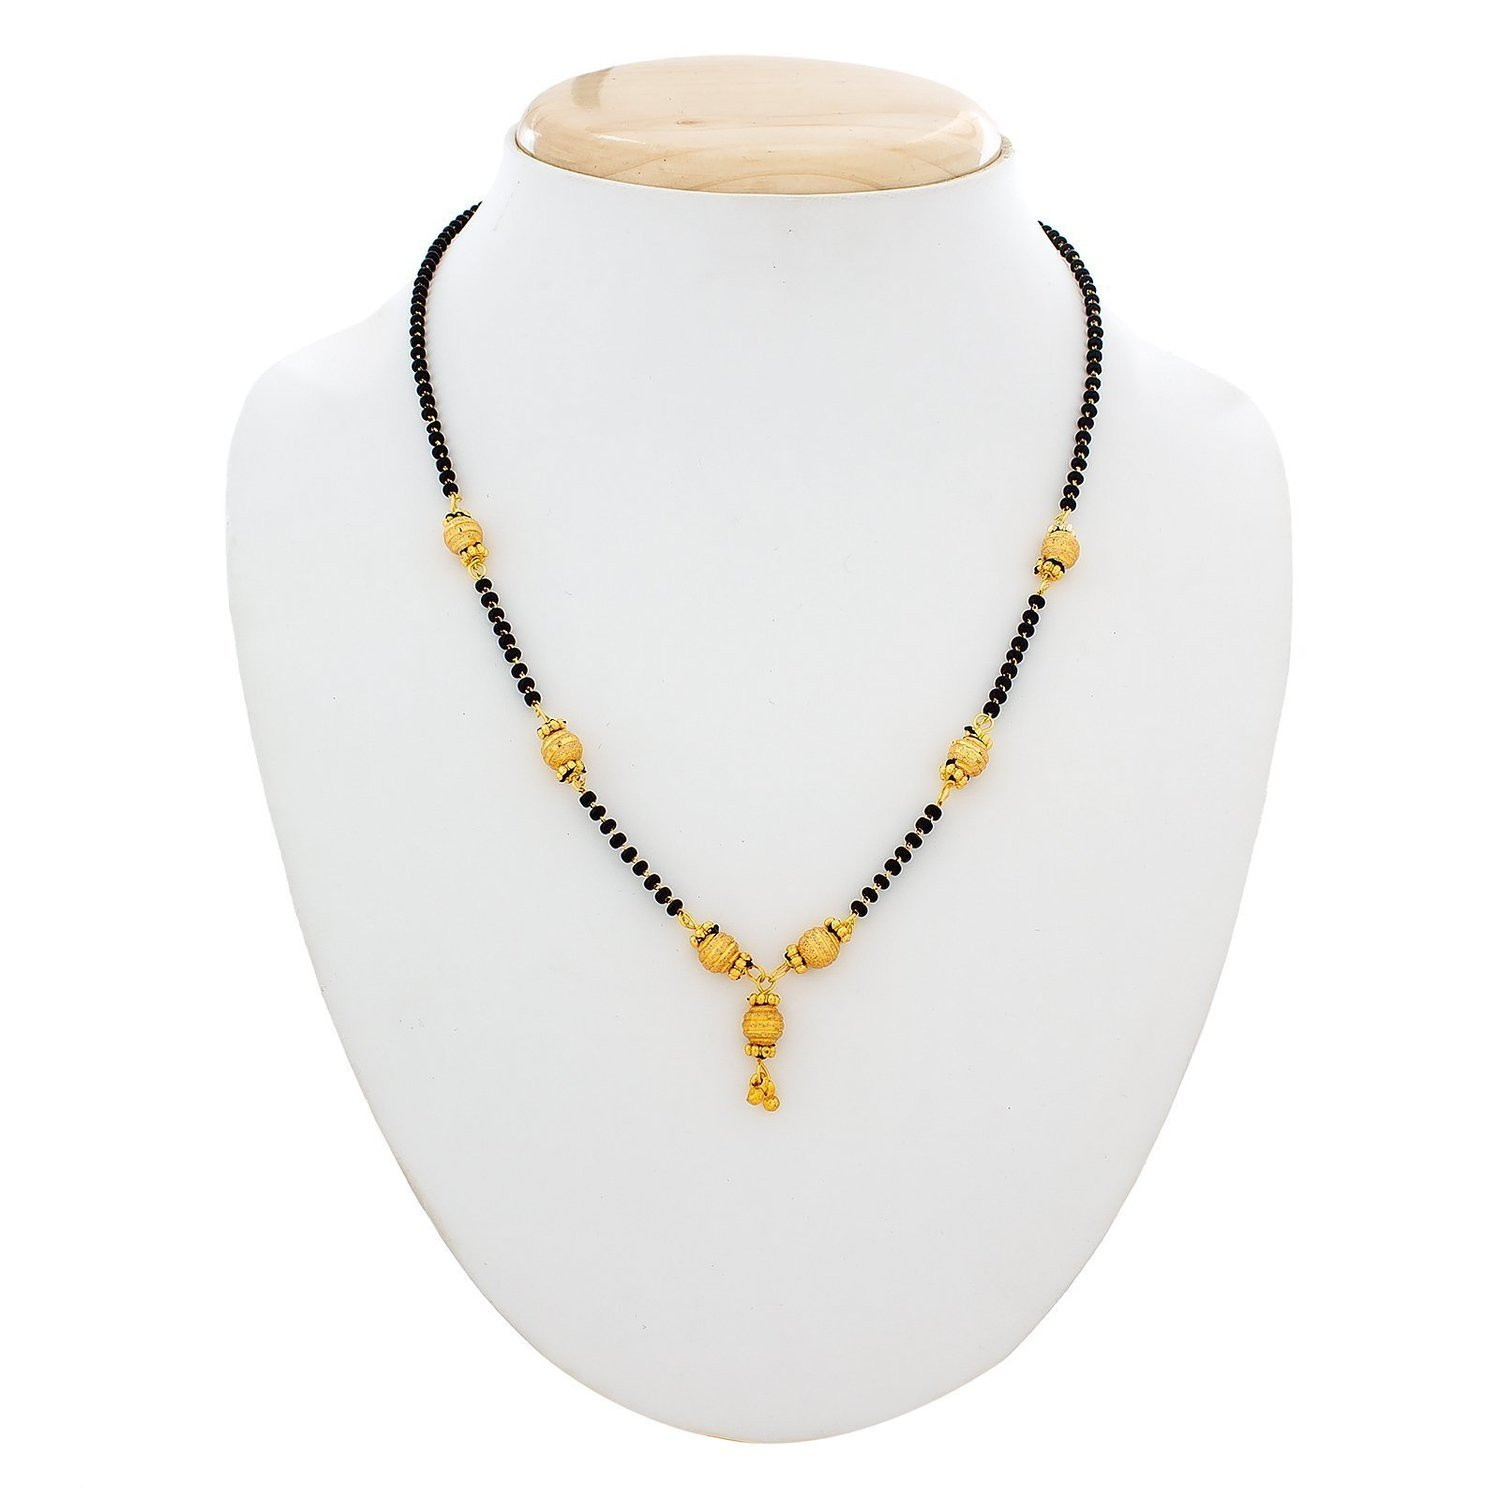 Combo of 3 Gold Plated & American Diamond Mangalsutra Necklace for Women-Life Keep Teaching